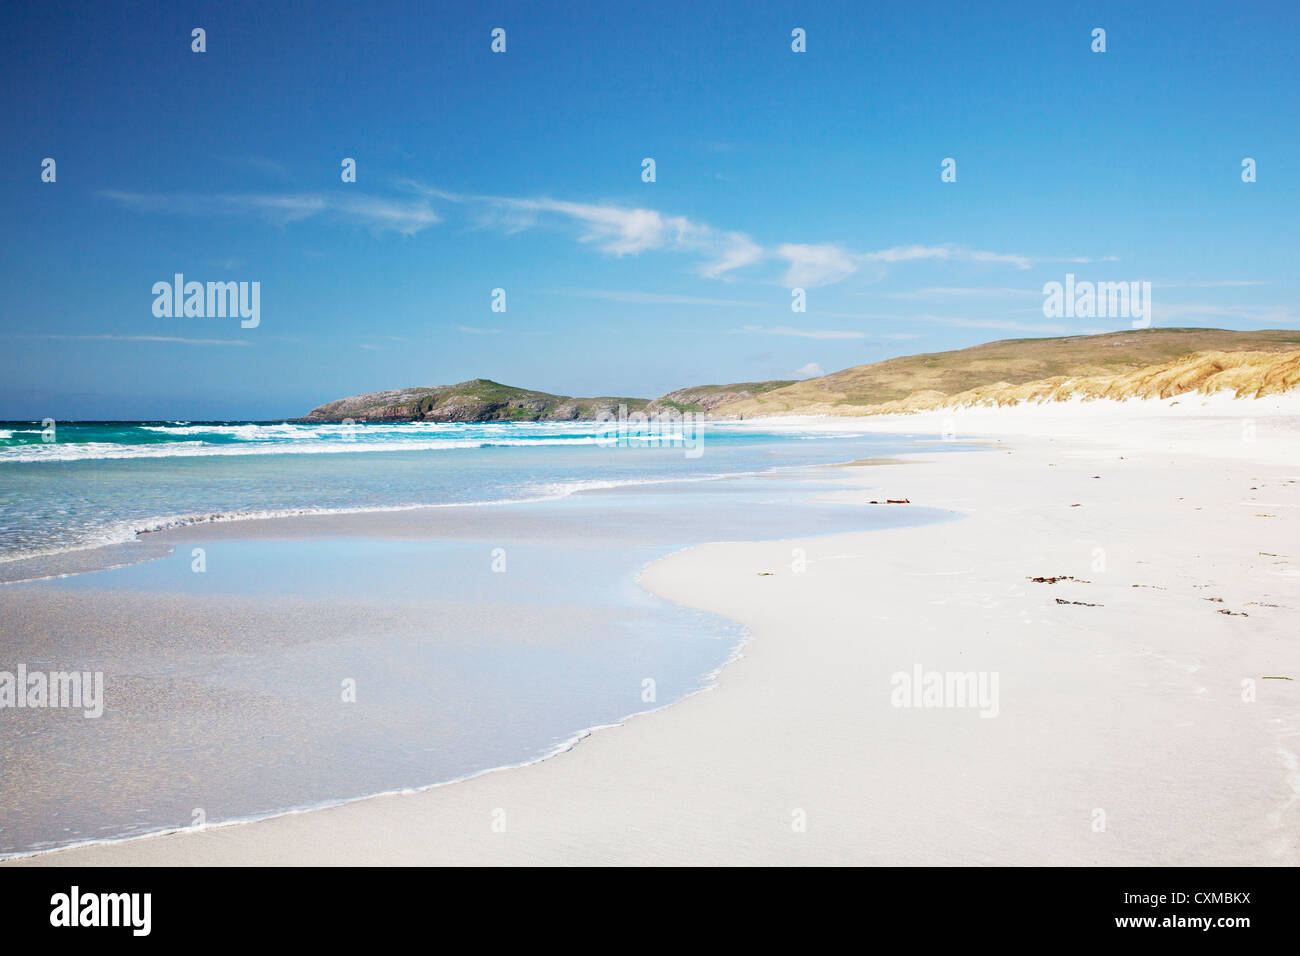 View across the white sandy beach of Traigh Eais, Barra, Outer Hebrides, Scotland UK - Stock Image